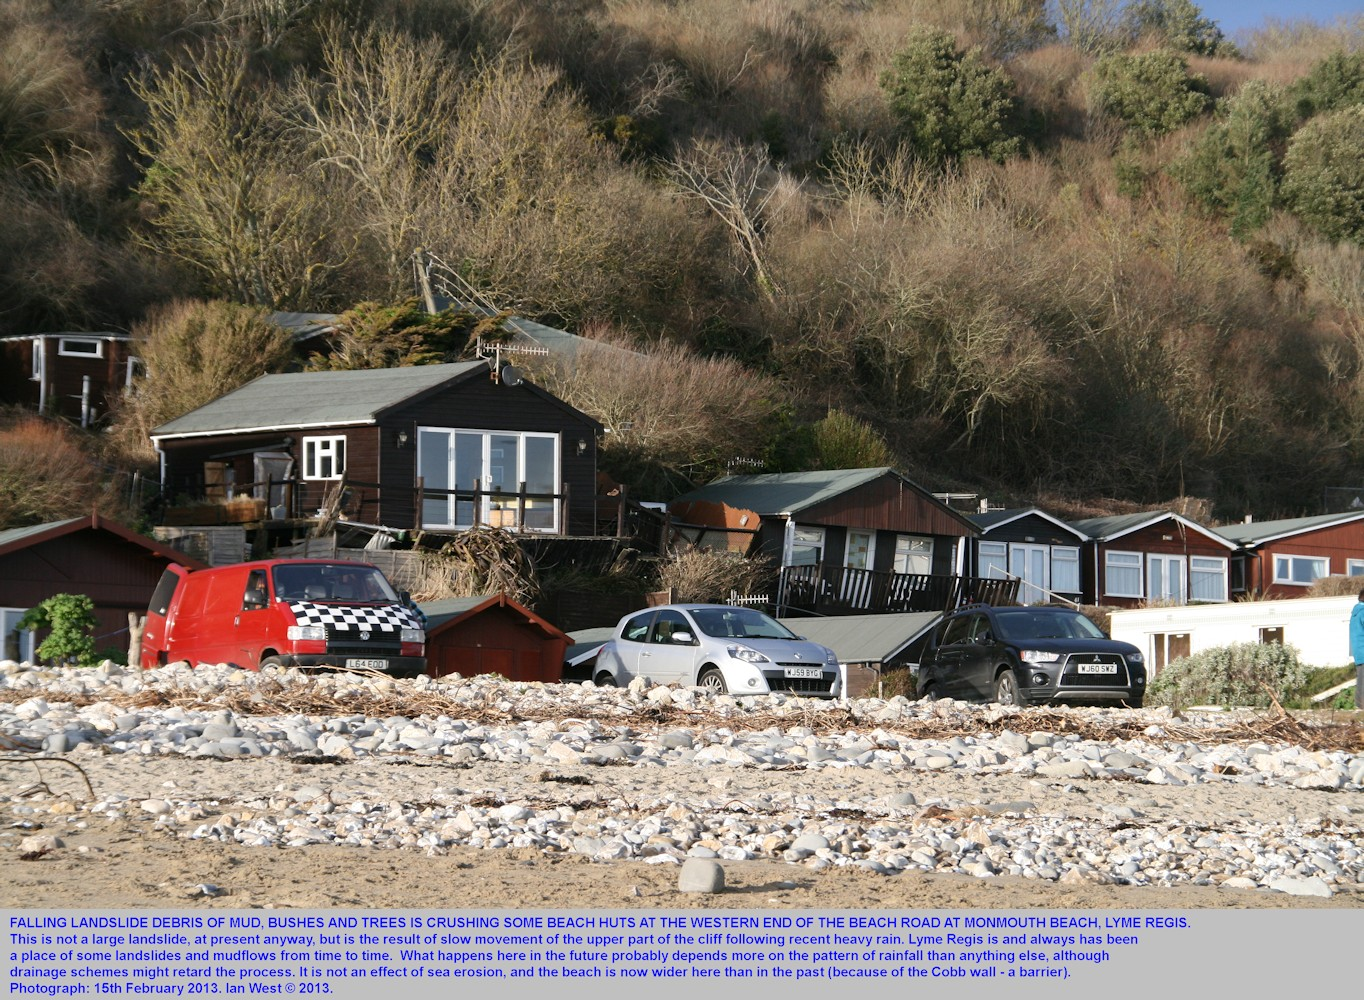 Debris descending on beach huts at the western end of the beach road, Monmouth Beach, Lyme Regis, Dorset, 15th February 2013